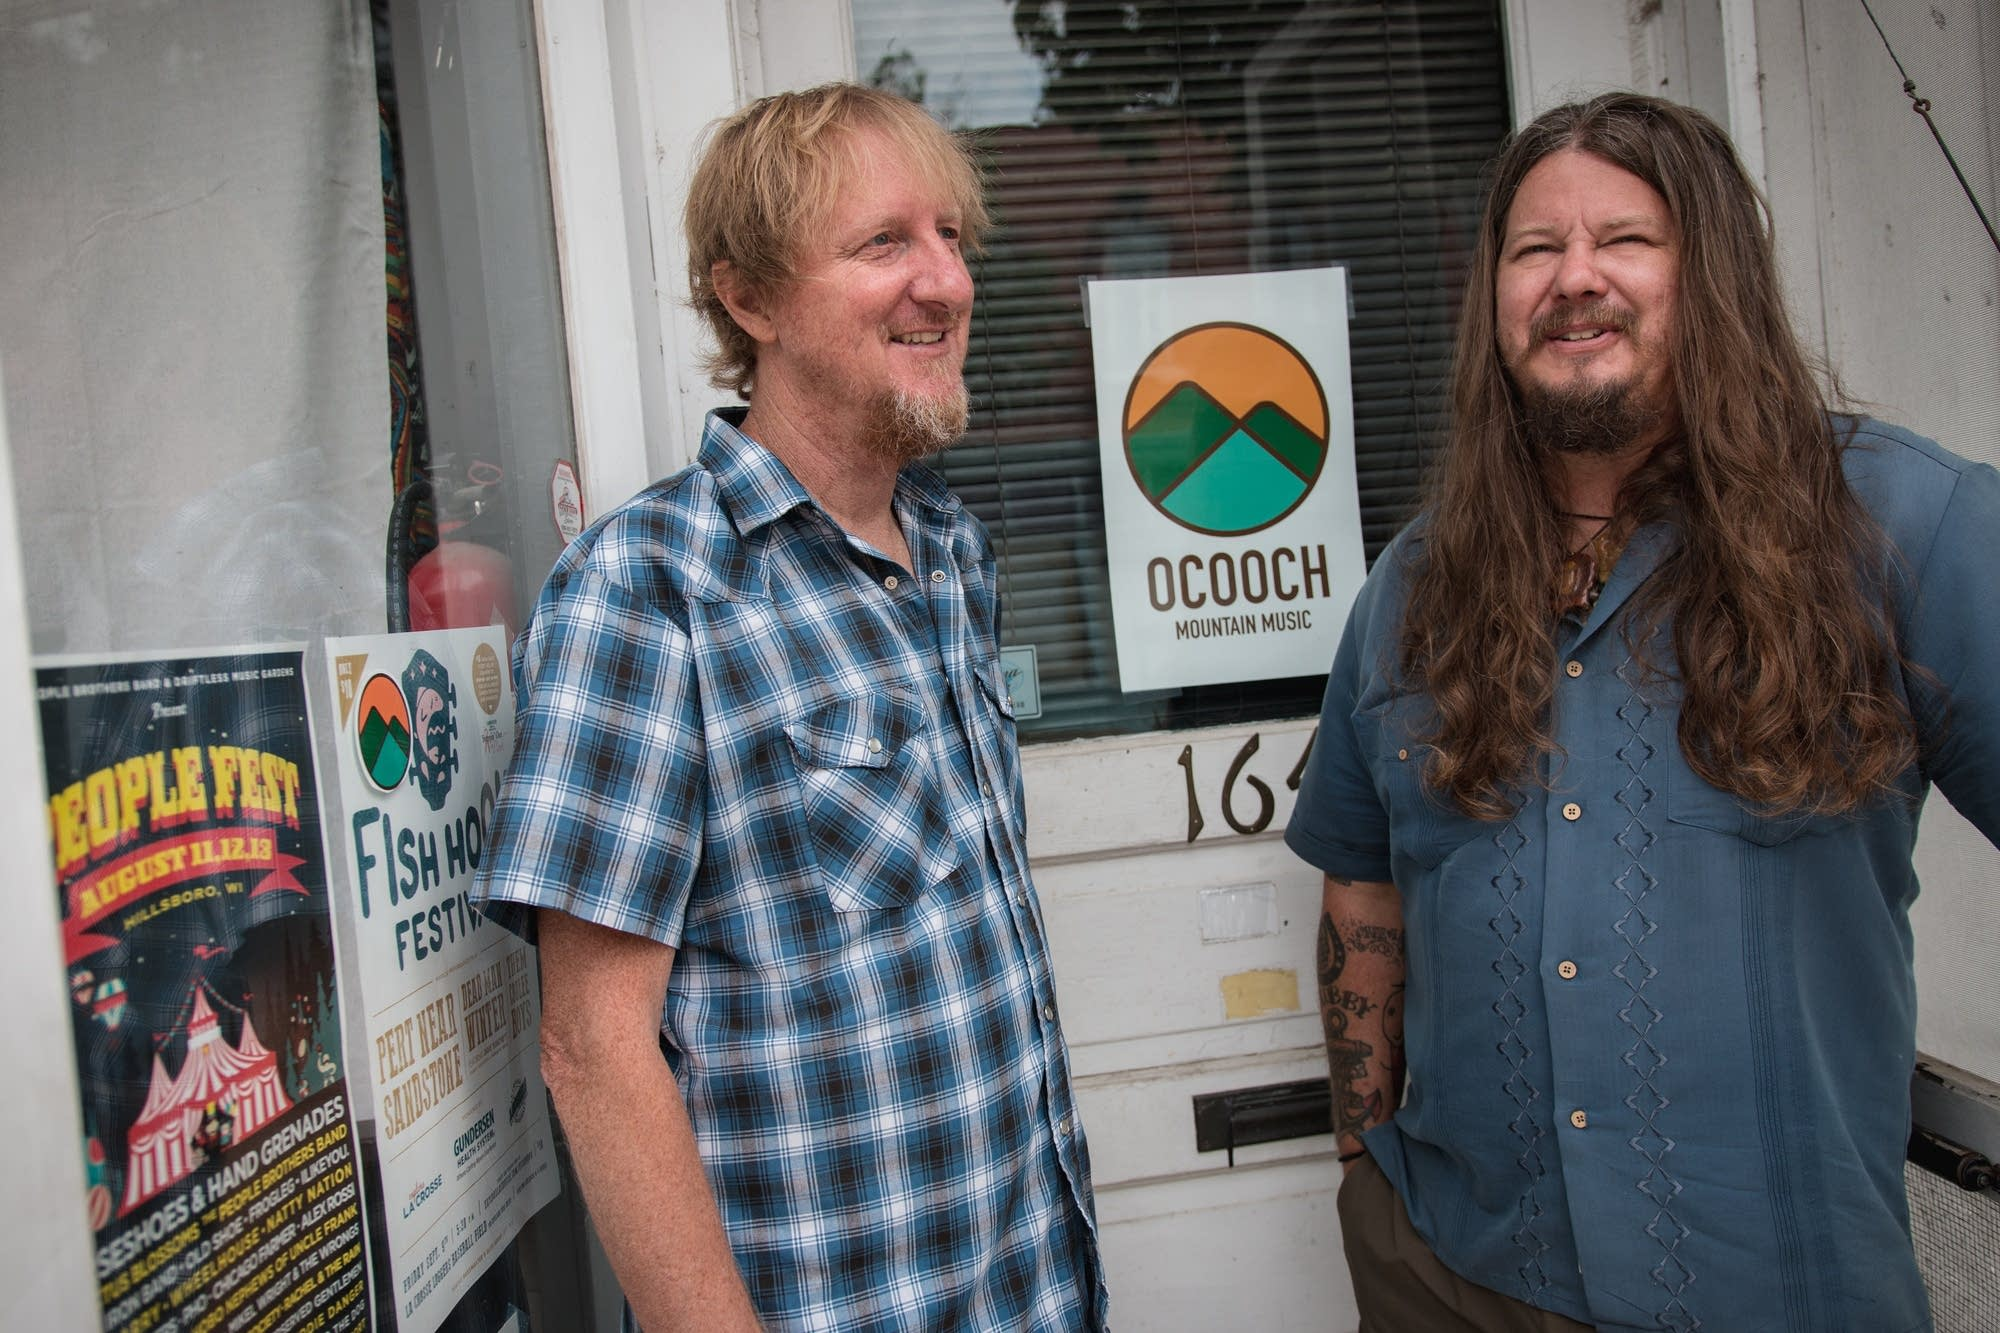 Parker Forsell and Pete Engen of Ocooch Mountain Music